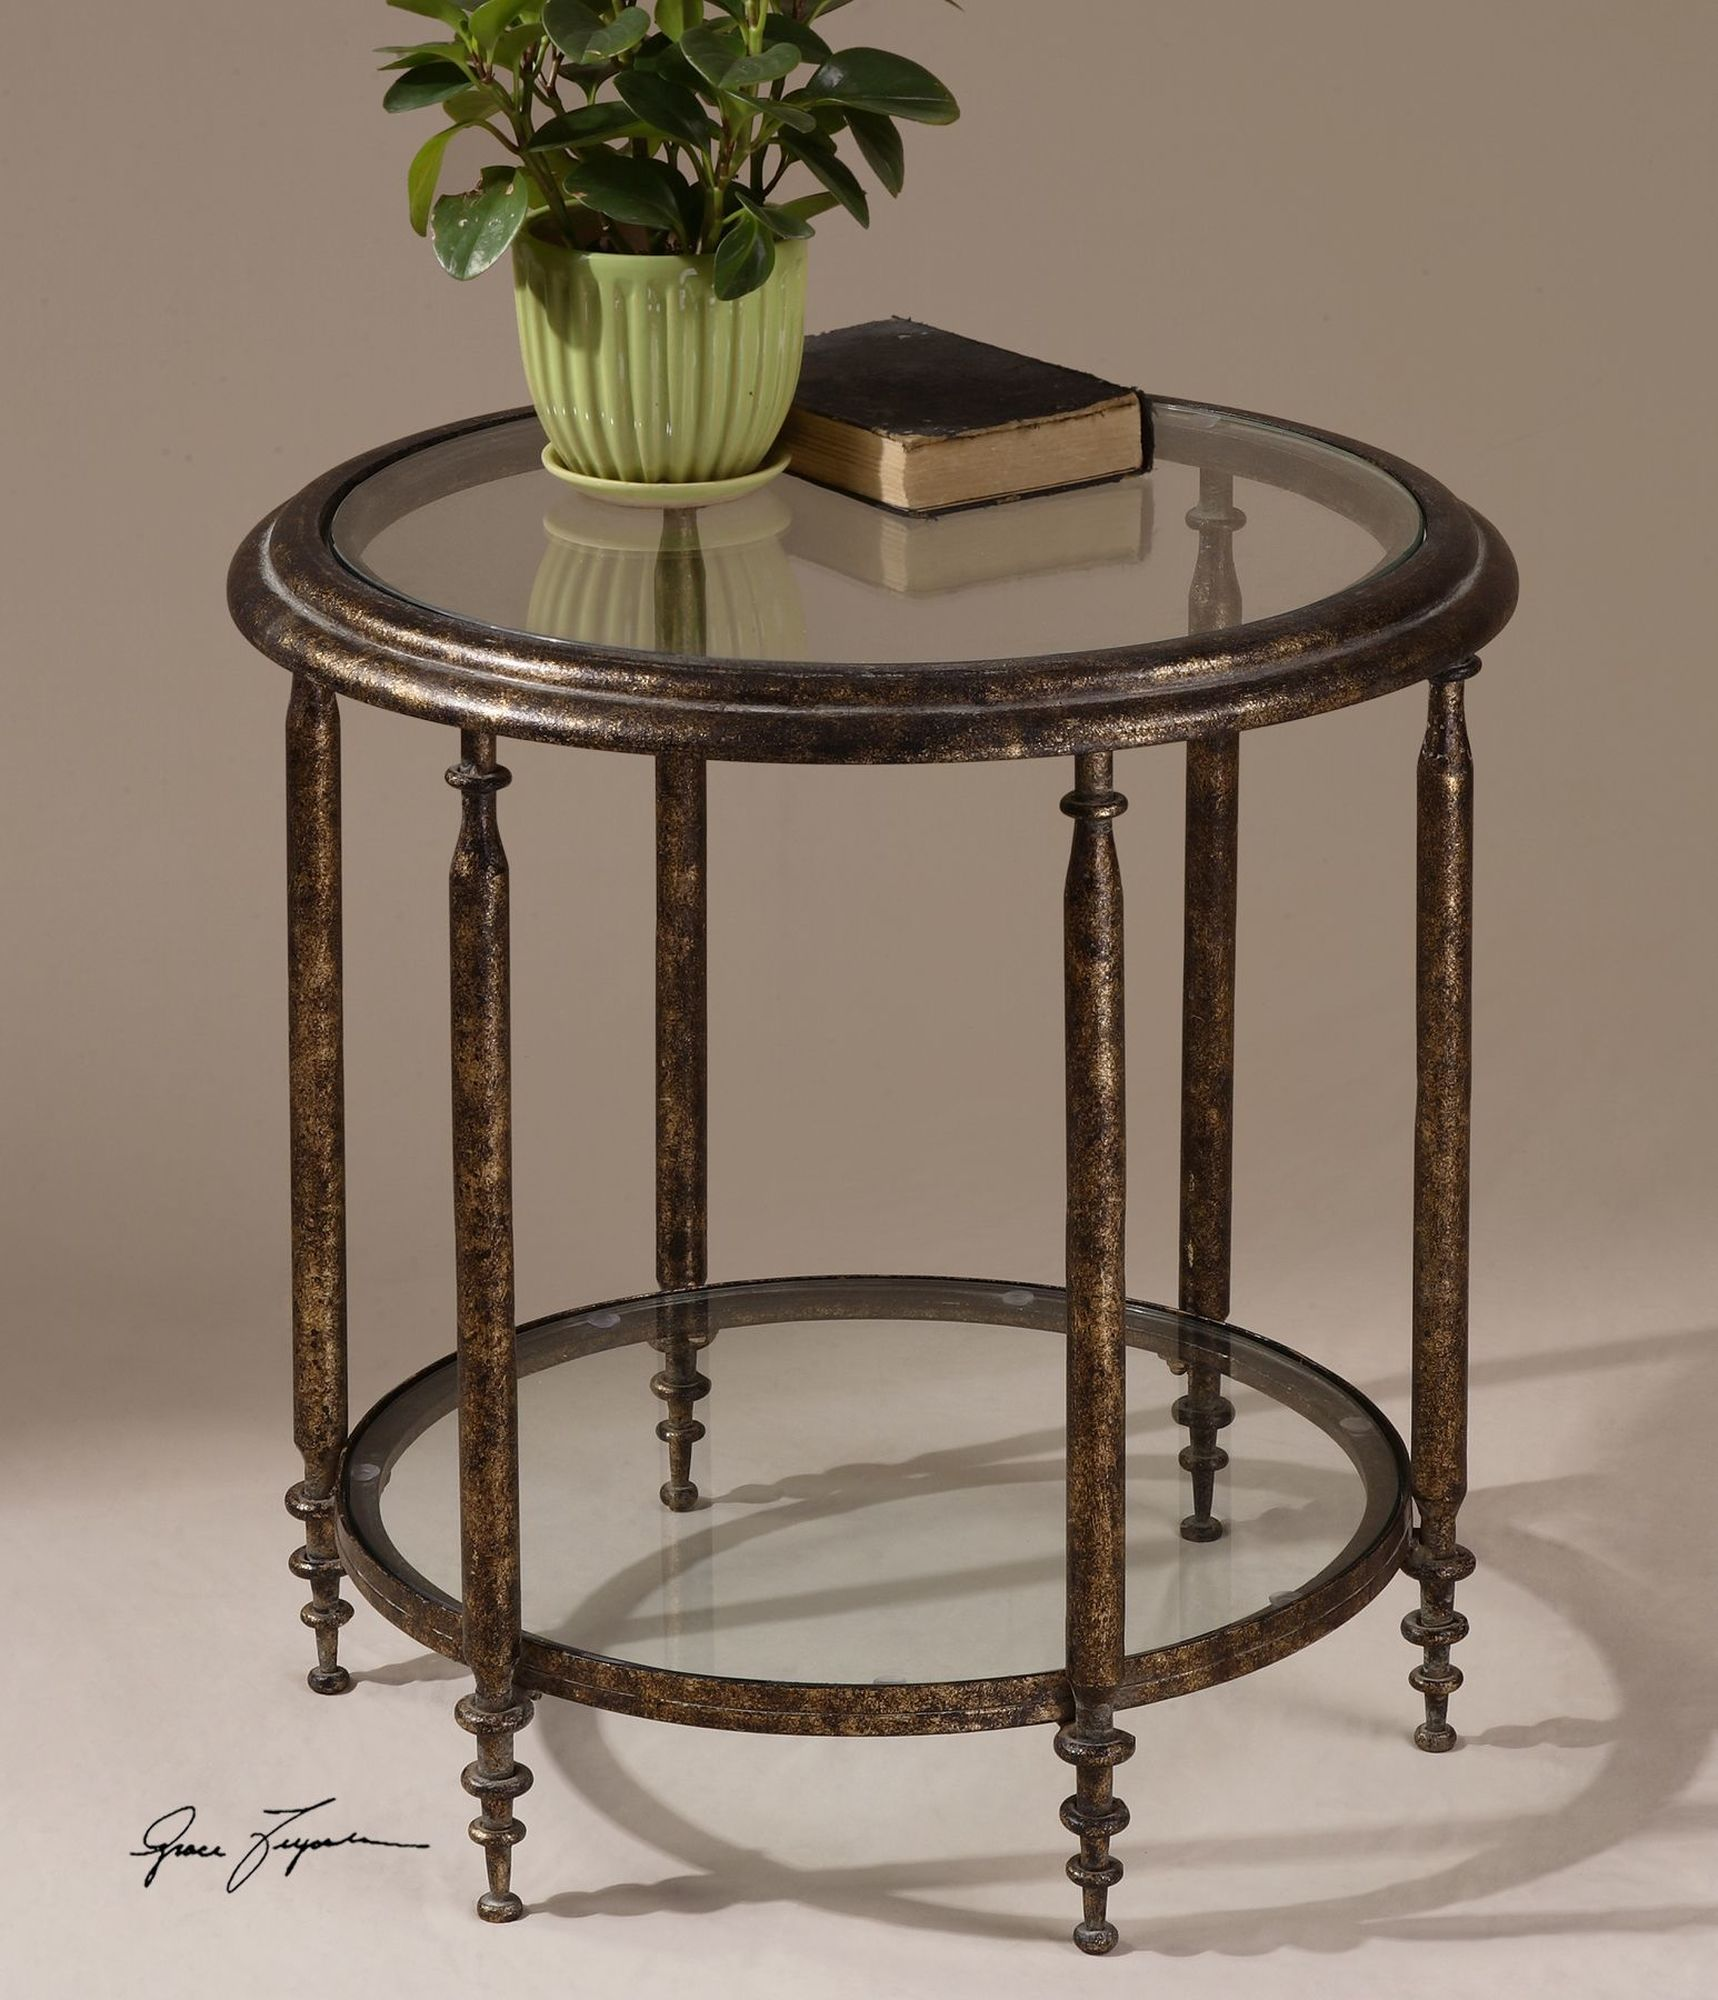 clear glass top round accent table with one shelf brown mathis bistro pub clock design half moon decor pier low tables for living room gold metal coffee solid wood and end